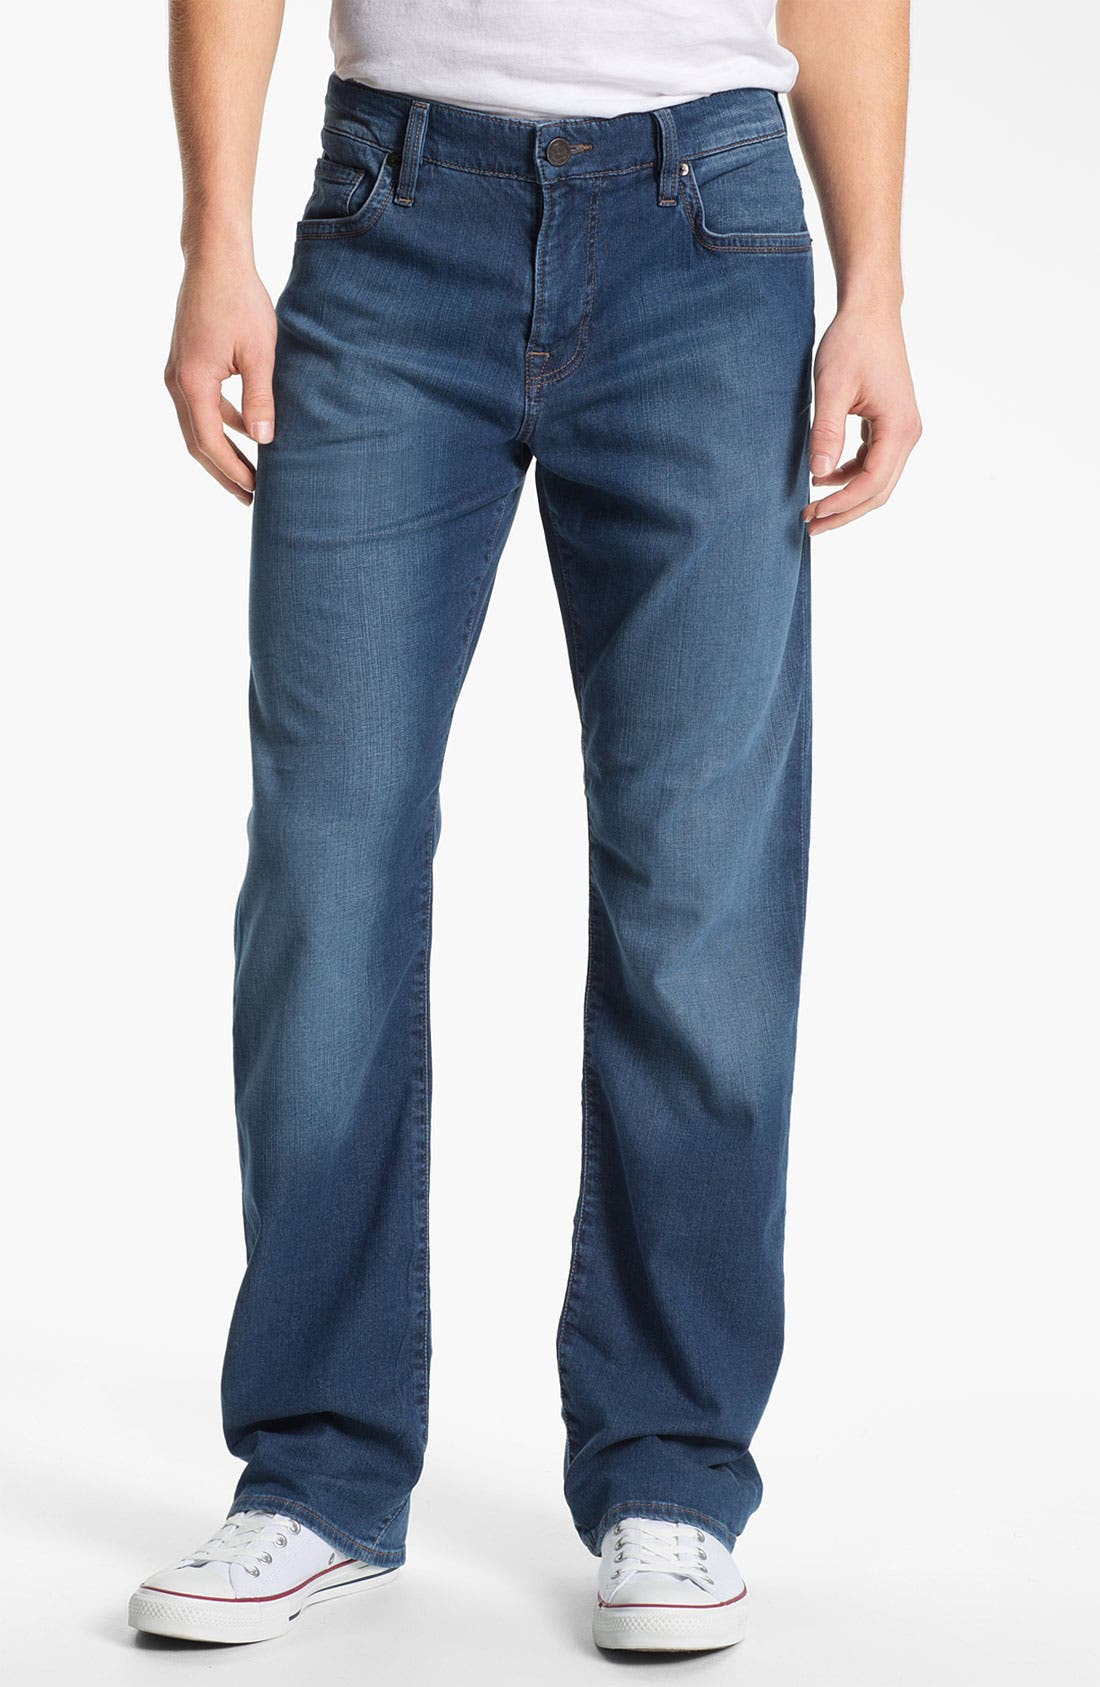 Alternate Image 1 Selected - 34 Heritage 'Courage' Straight Leg Jeans (Mid Cashmere) (Online Exclusive)